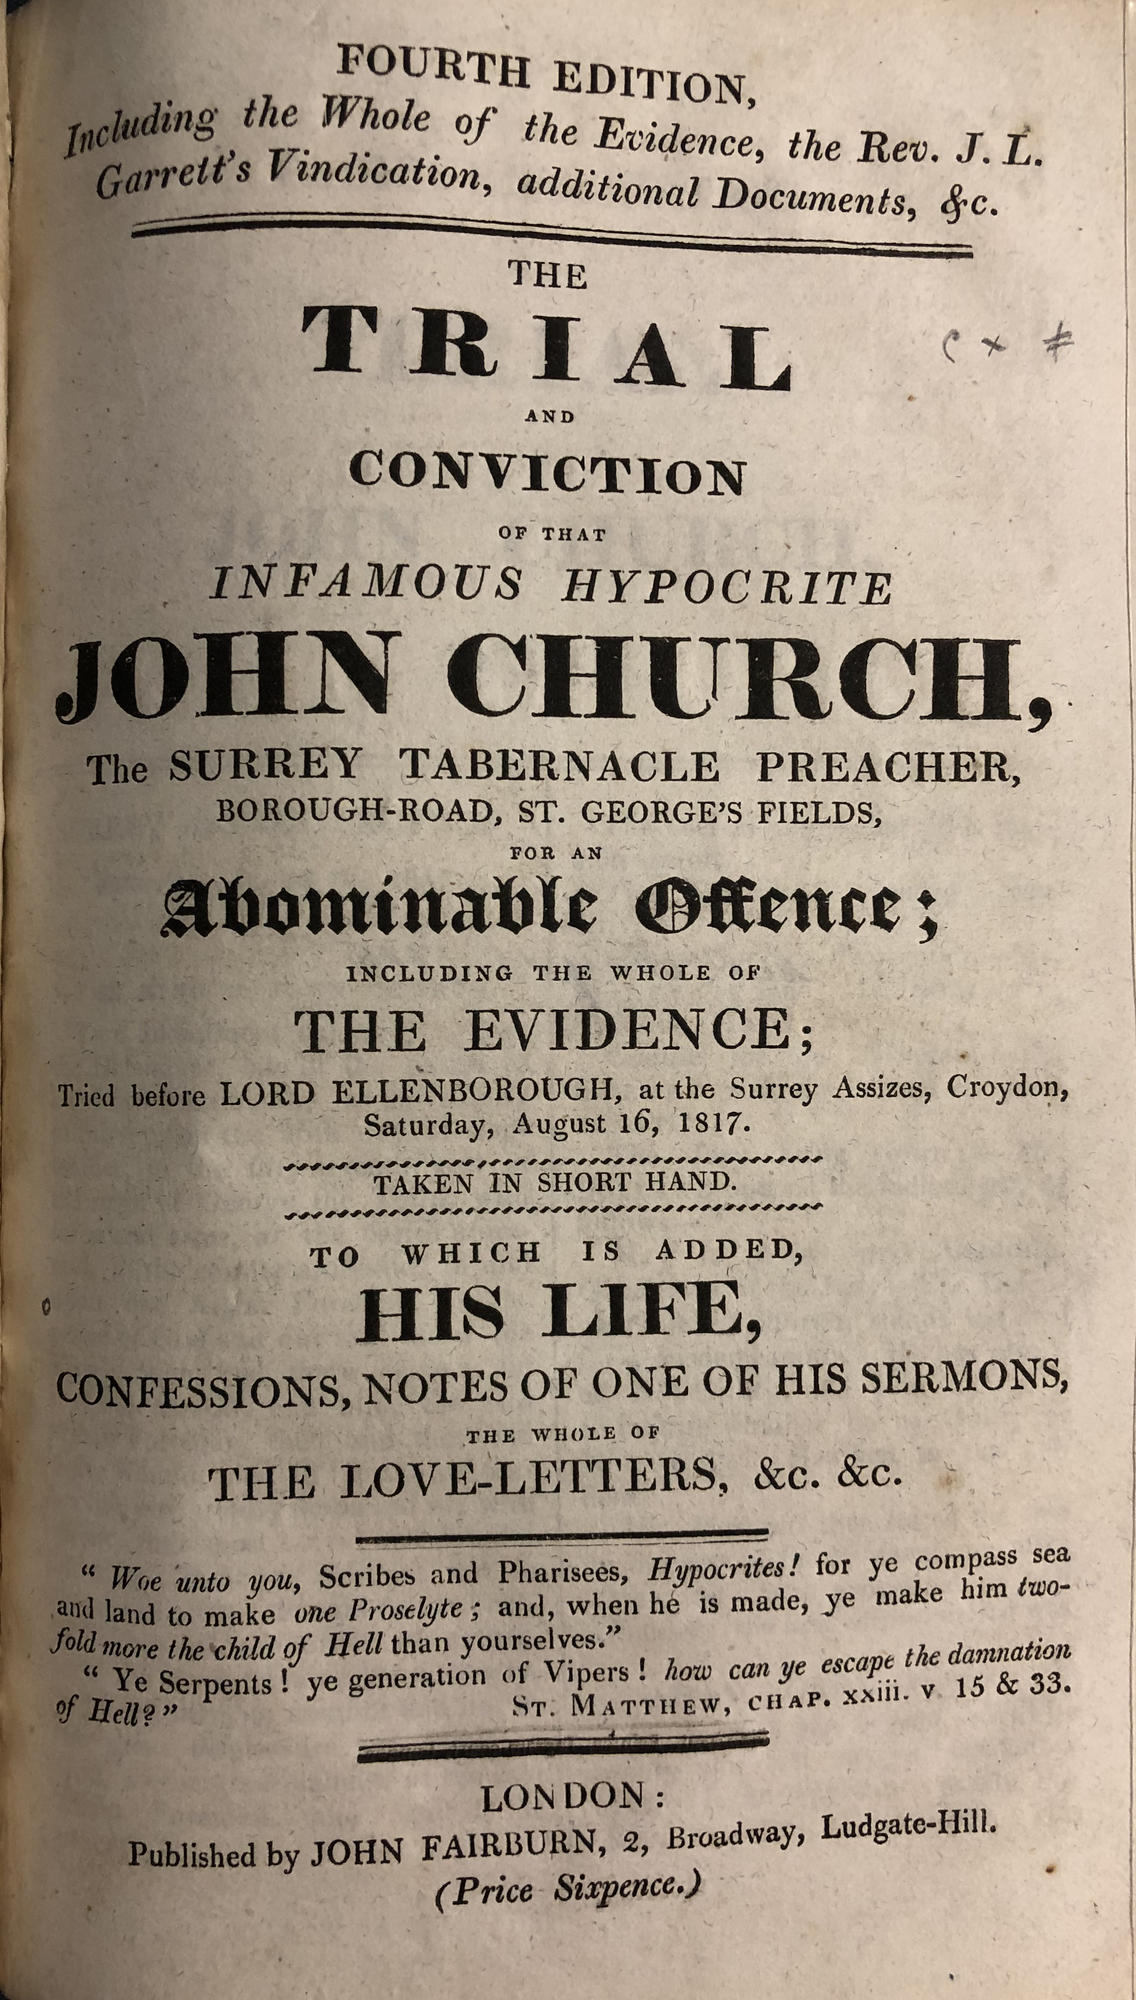 Title page of ca. 1817 title about trial of John Church